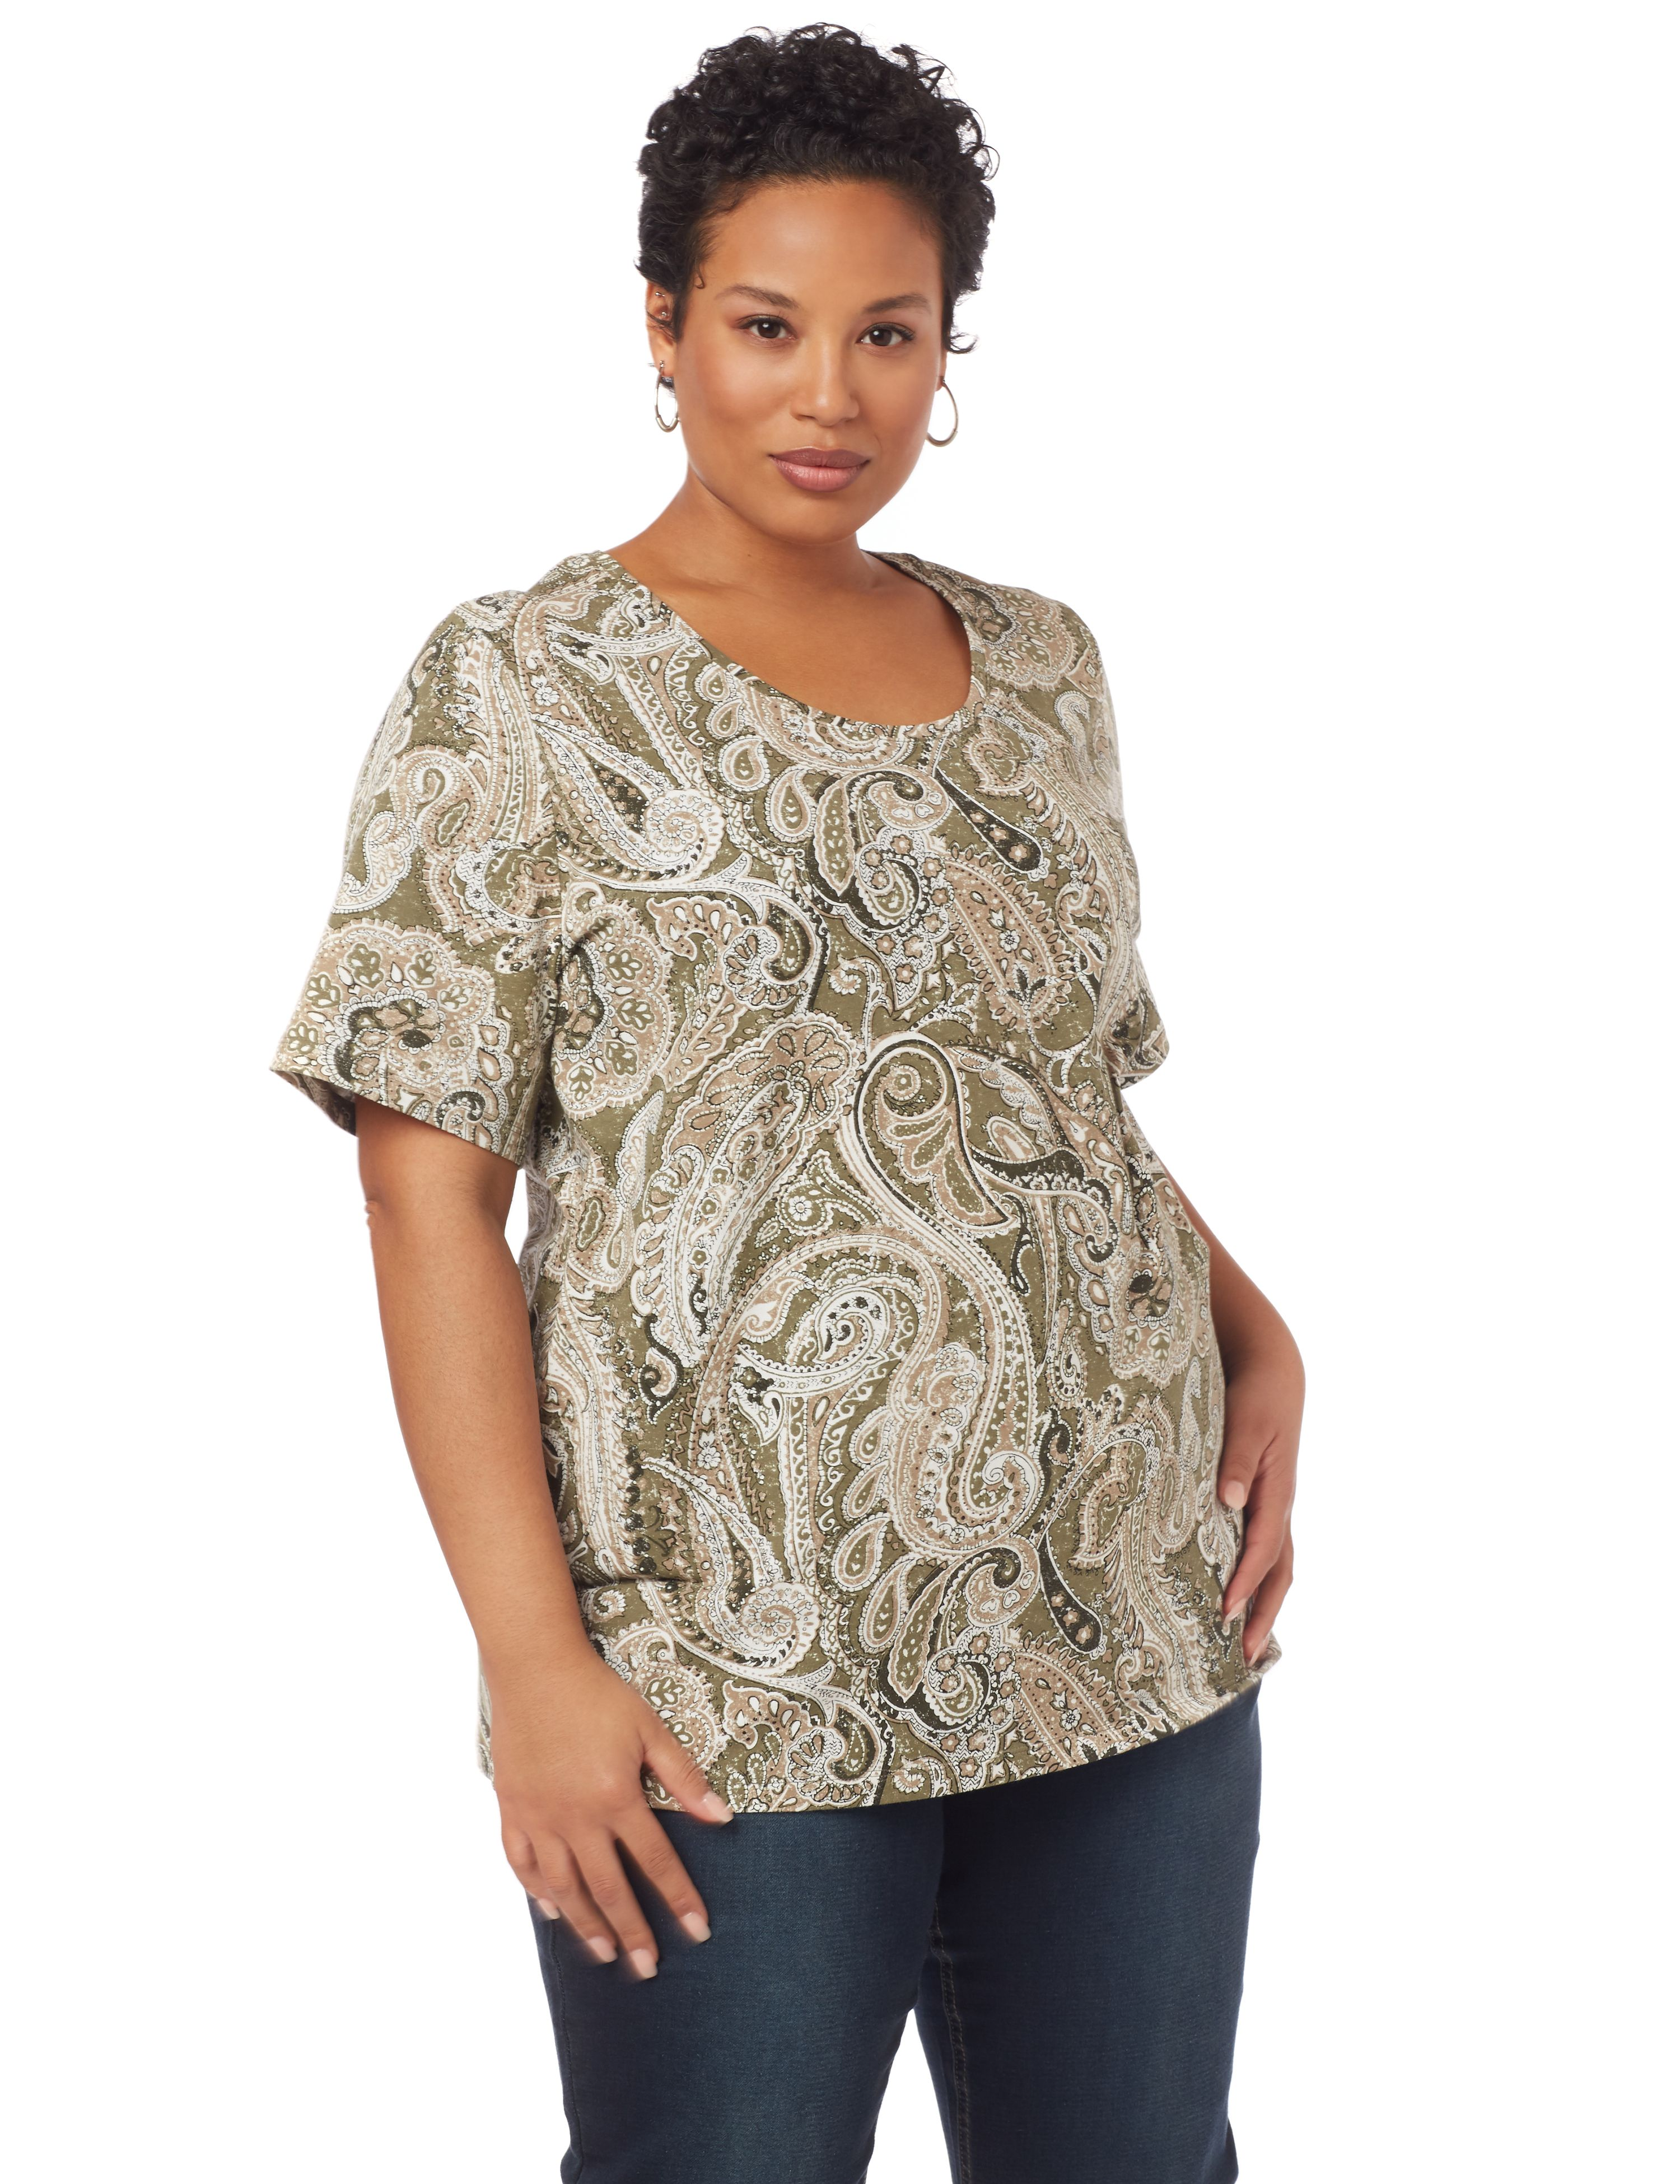 Paisley Dream Short-Sleeve Top 1087870 SS A/O PAISLEY PRINT MP-300094973